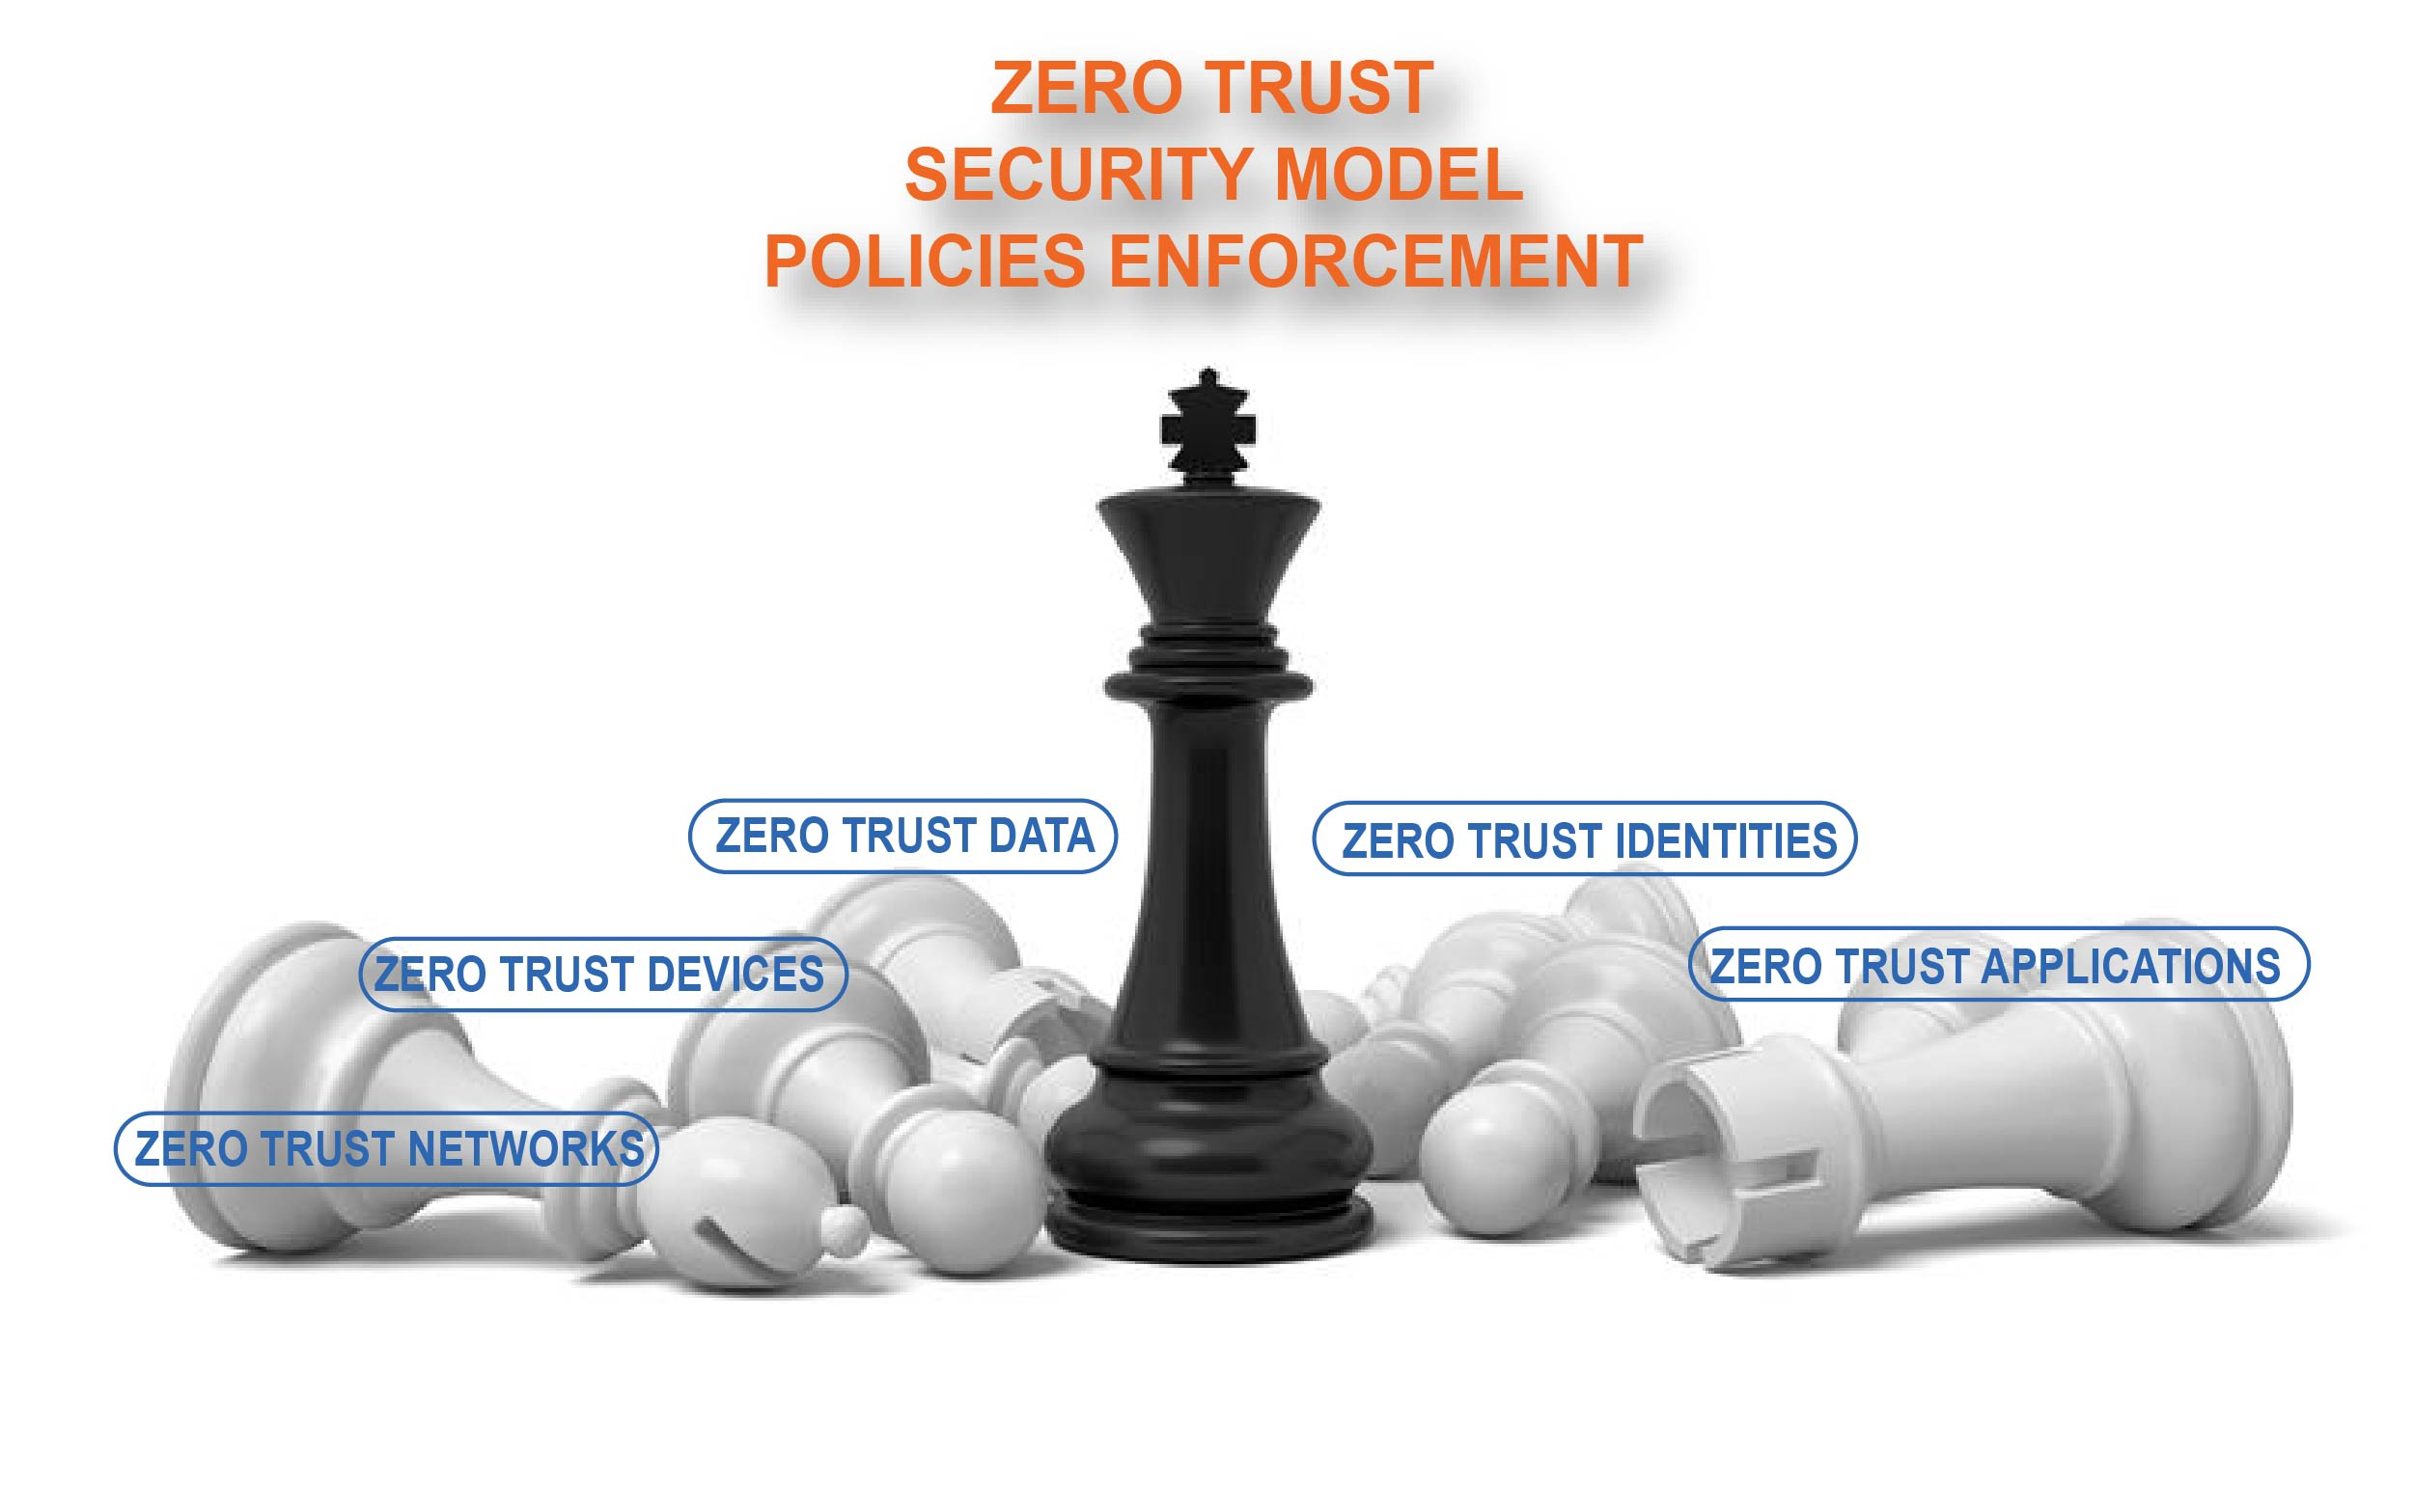 Thin Client Zero Trust Security